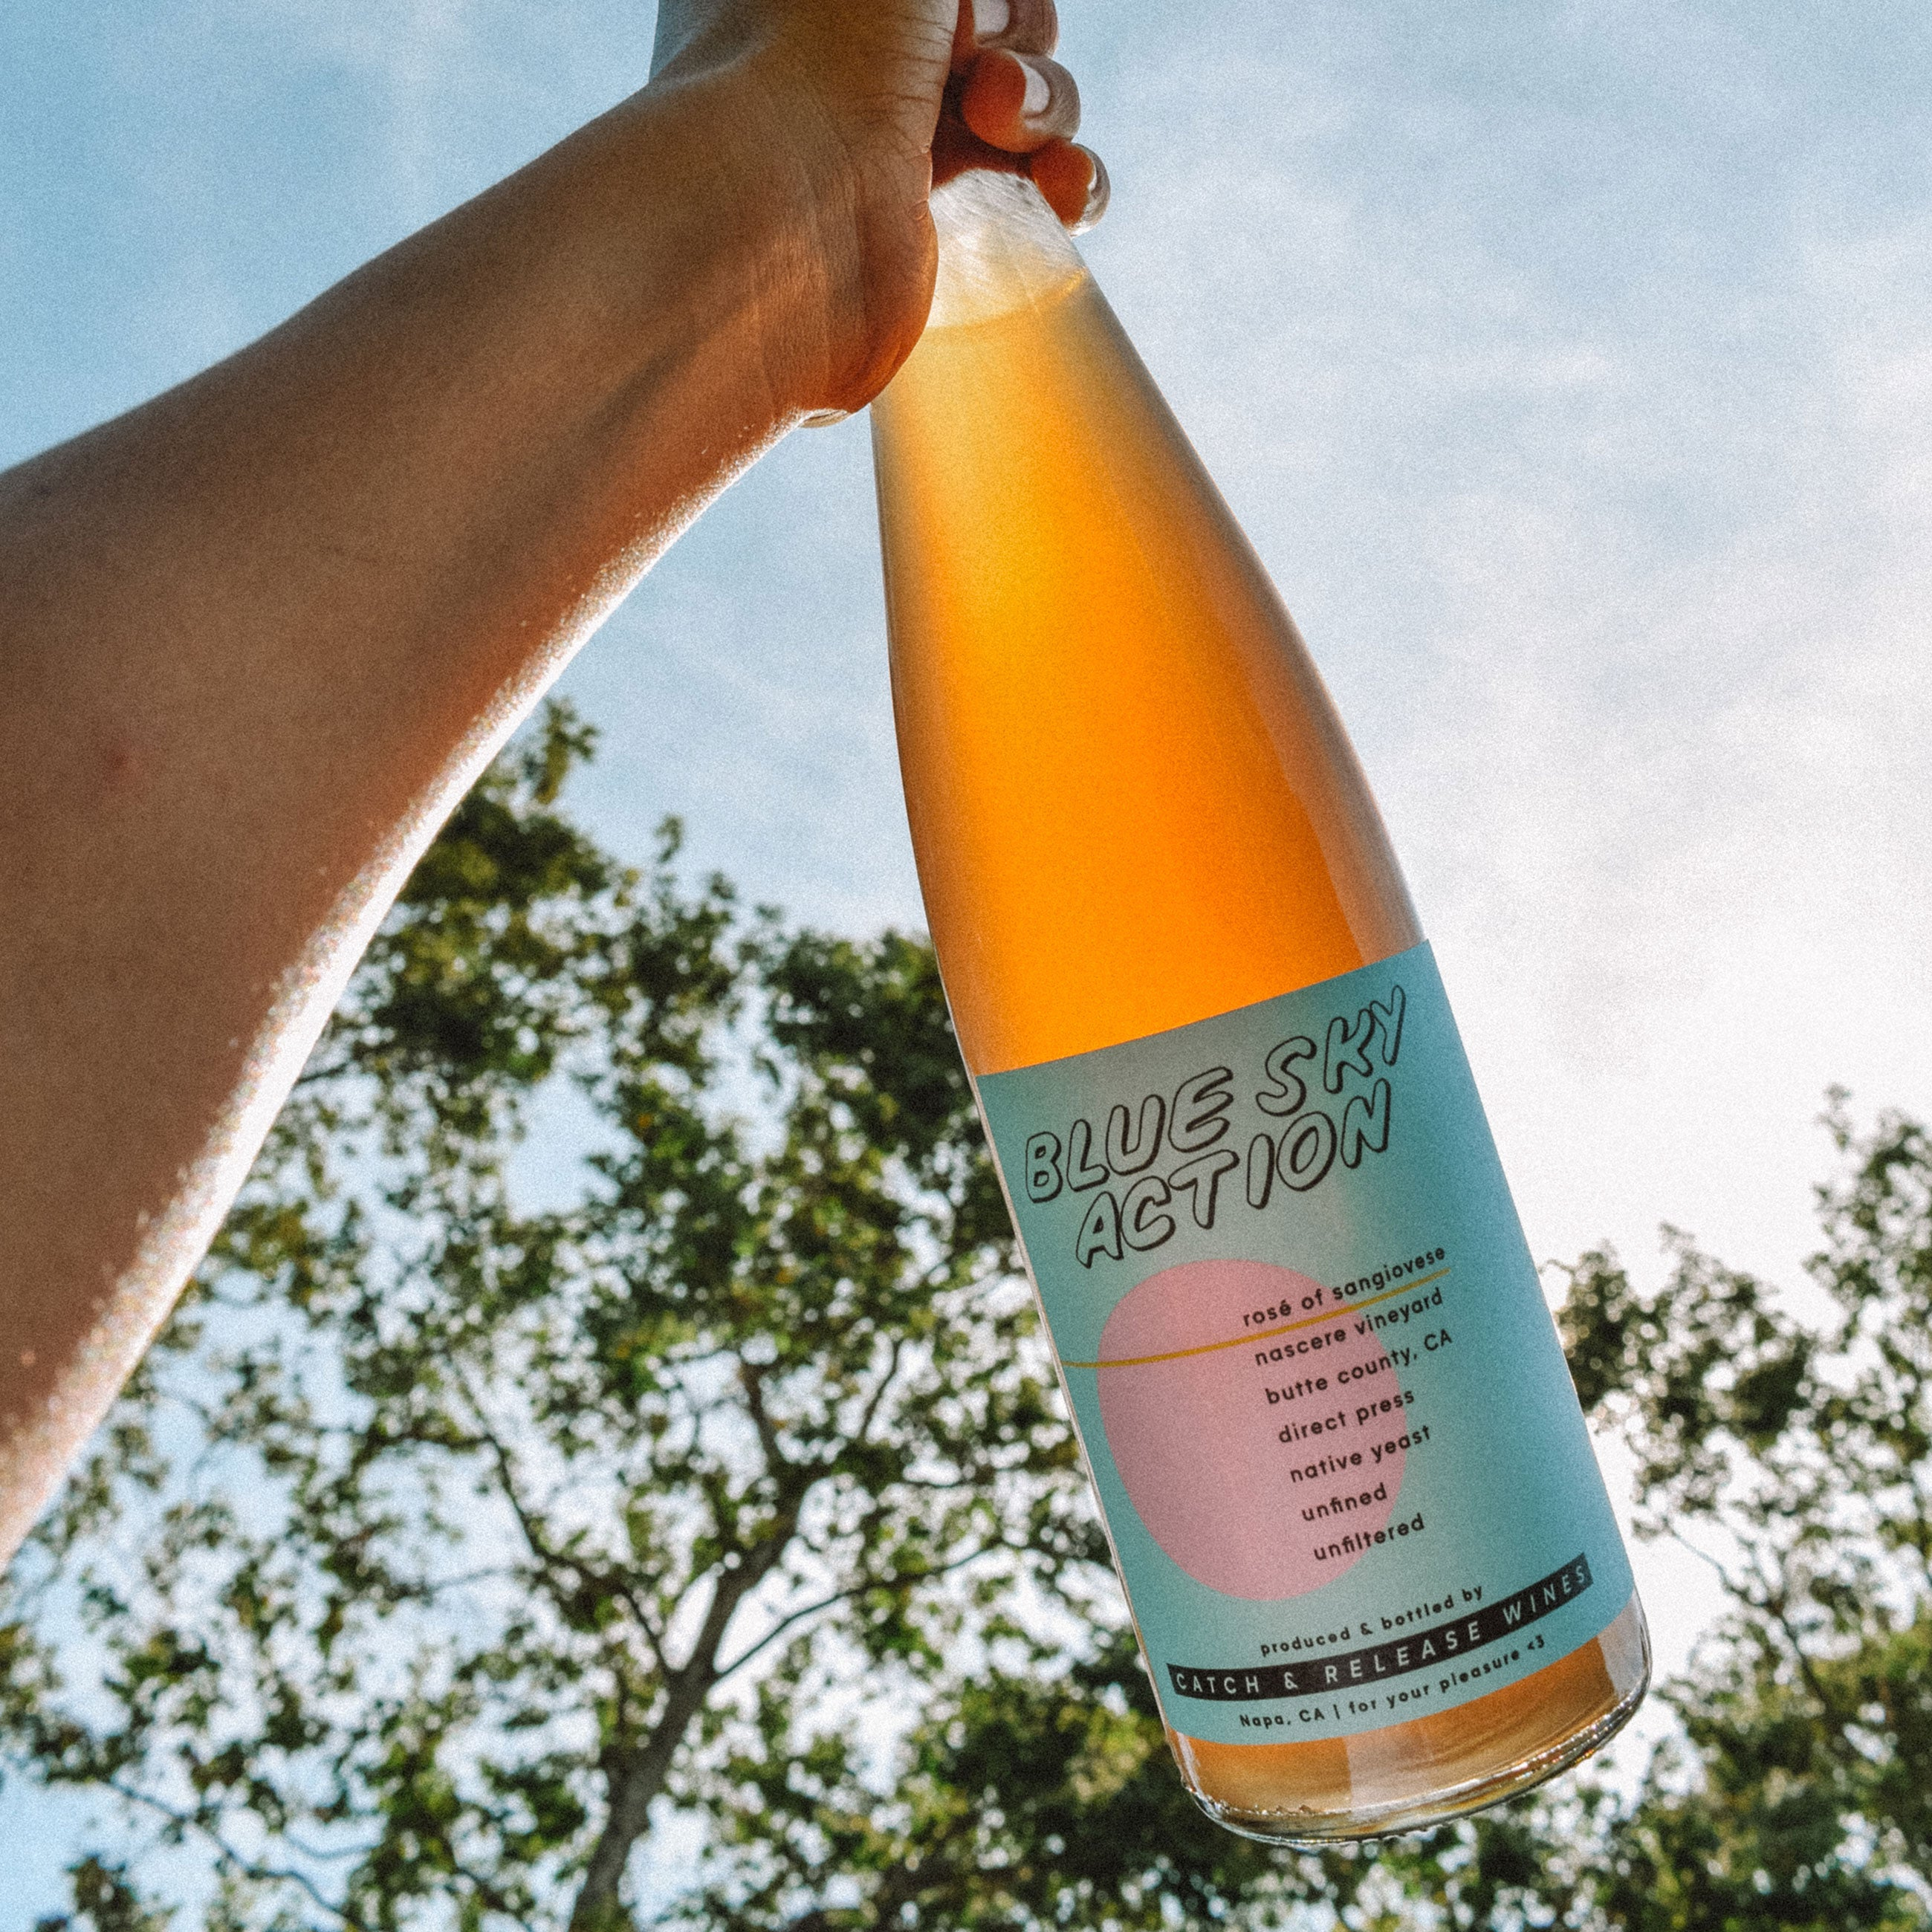 Catch & Release Wines Blue Sky Action Natural Rosé